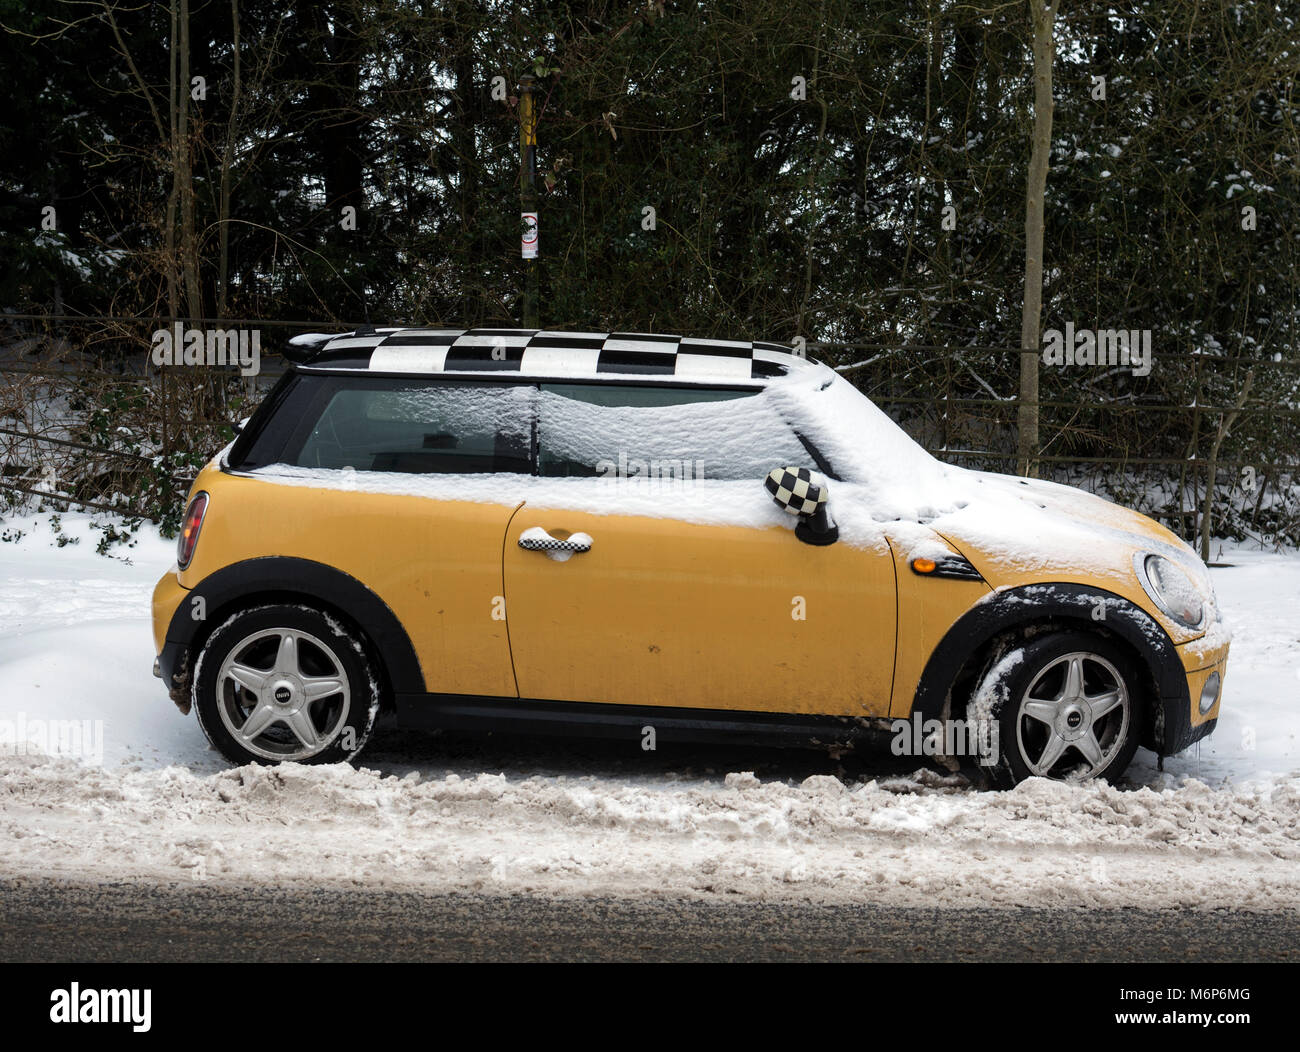 Mini Cooper Car Yellow High Resolution Stock Photography And Images Alamy